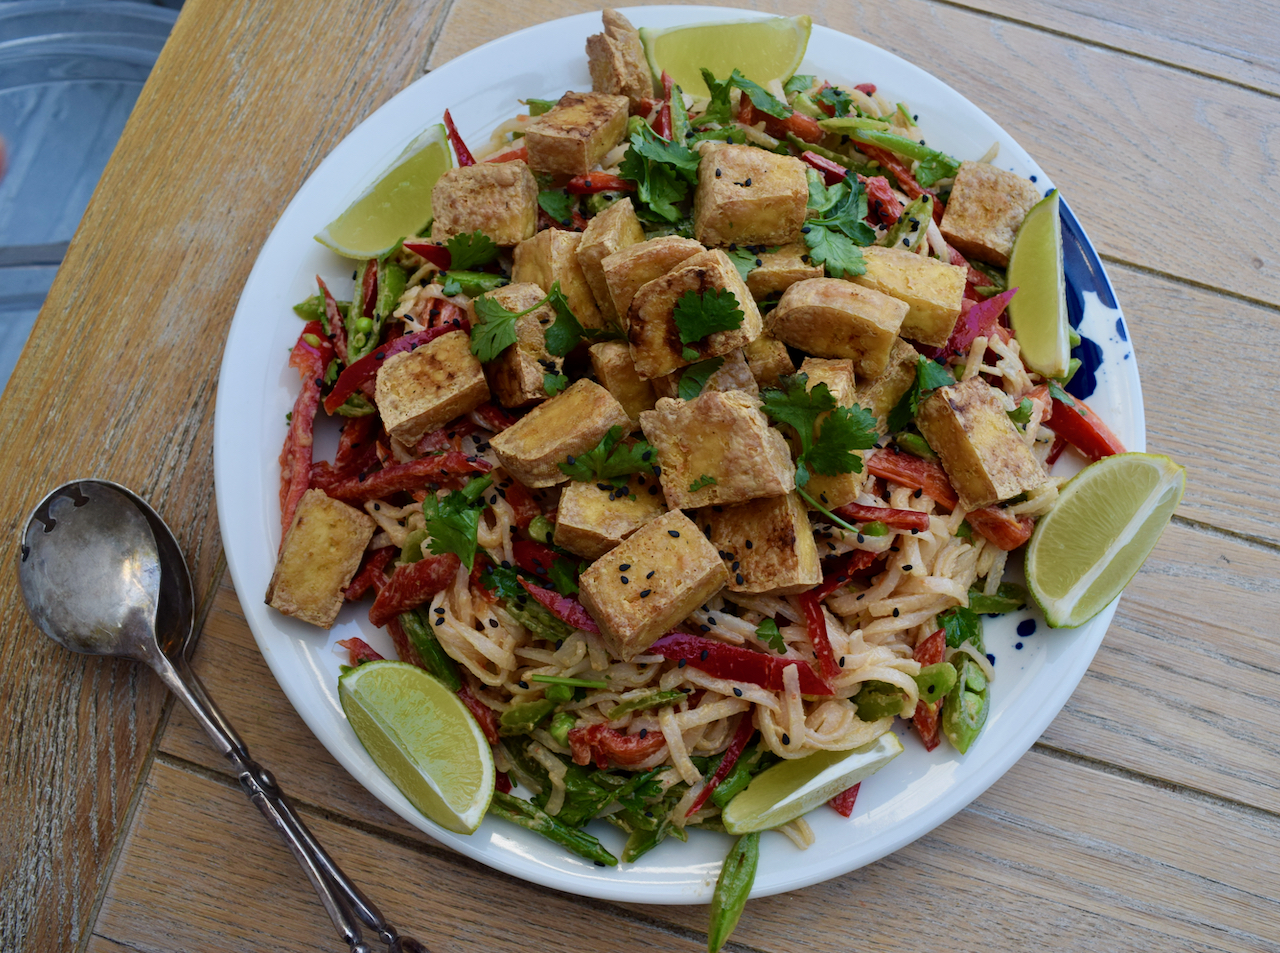 Peanut Sesame Noodle Salad with Crispy Tofu recipe from Lucy Loves